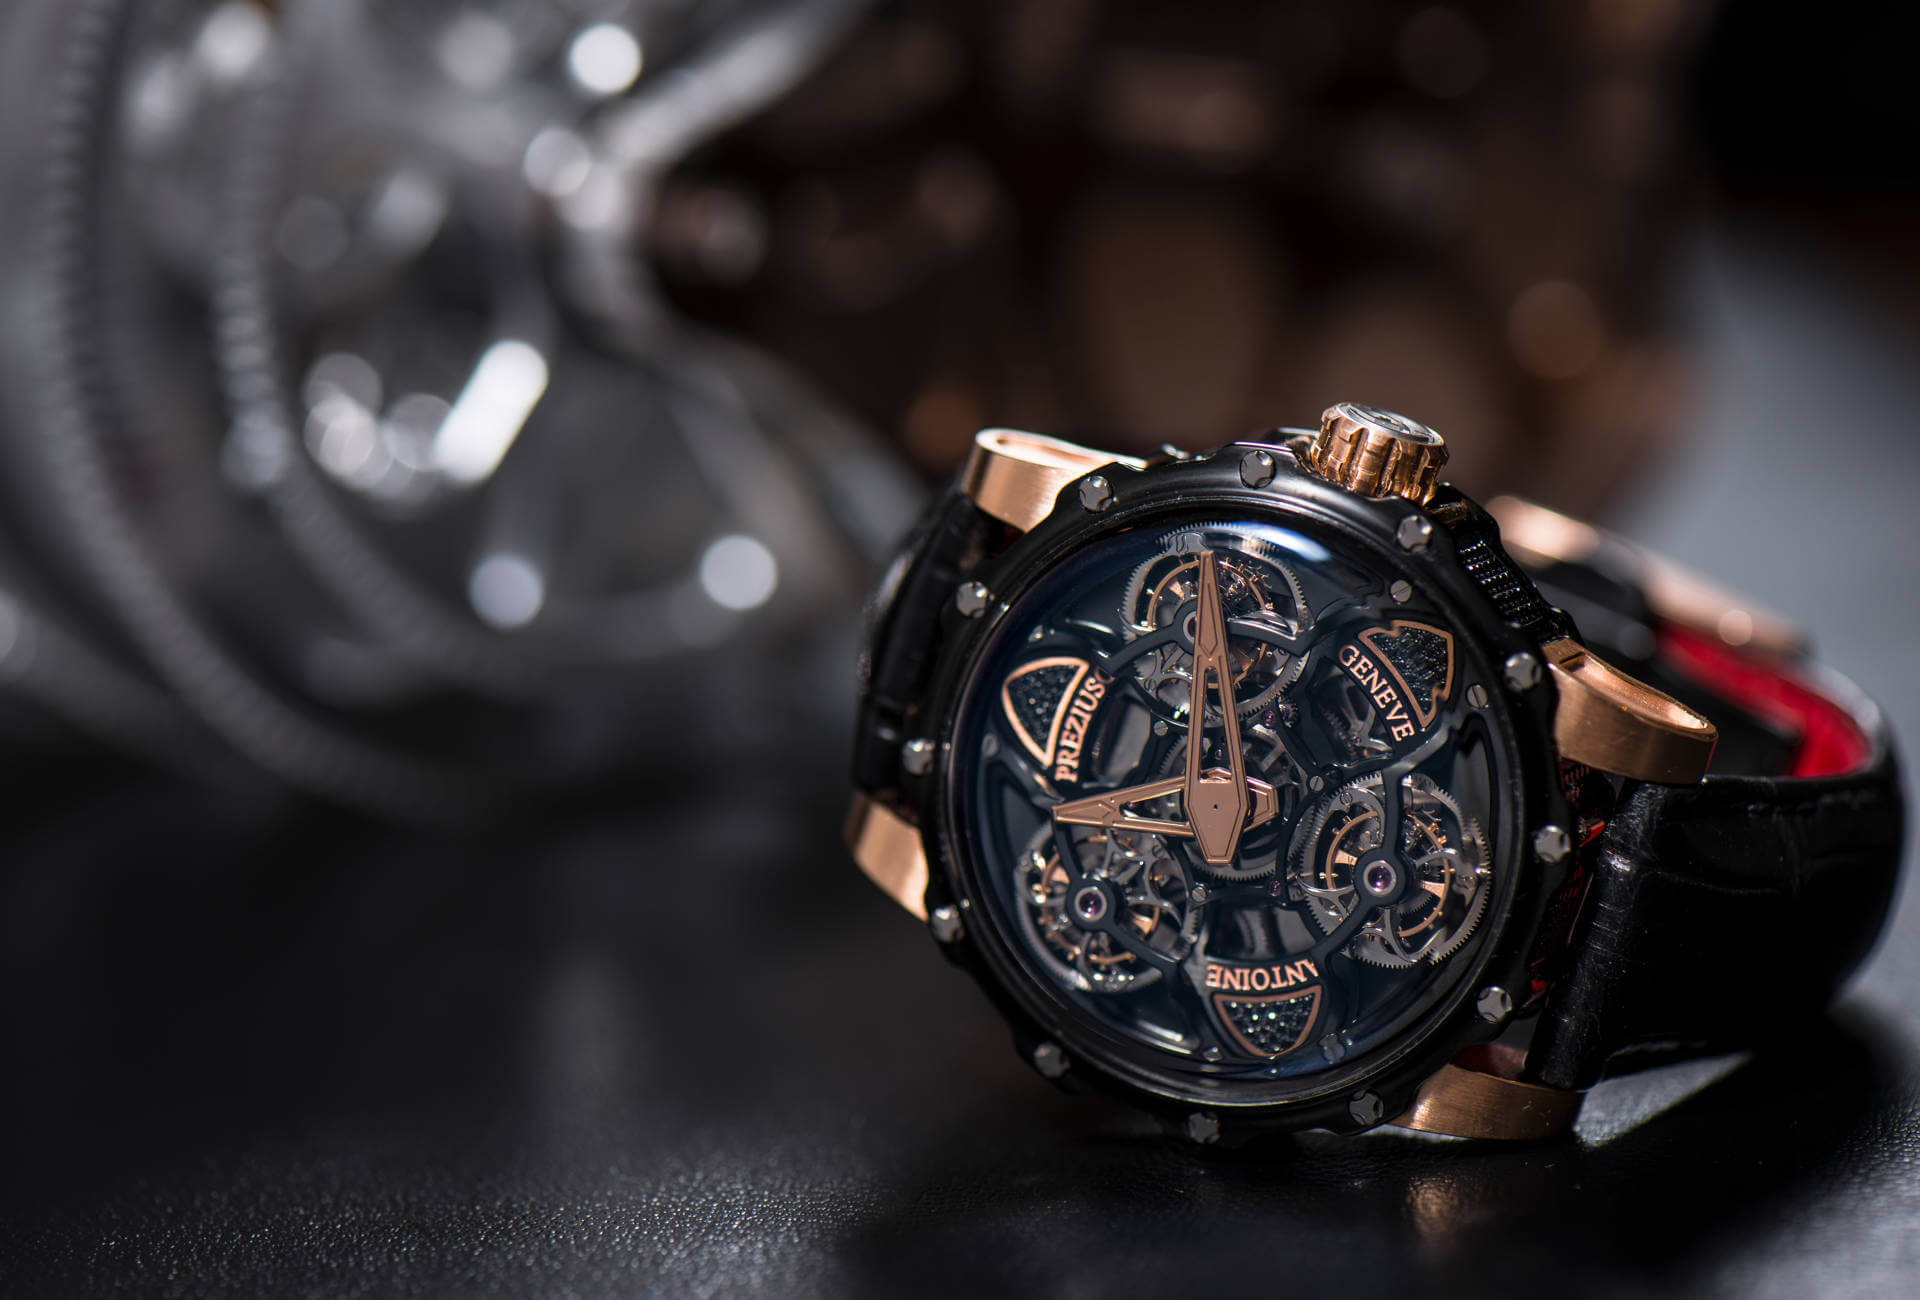 design innovativo e011f 8e66f In the name of the father, son and tourbillon – FHH Journal